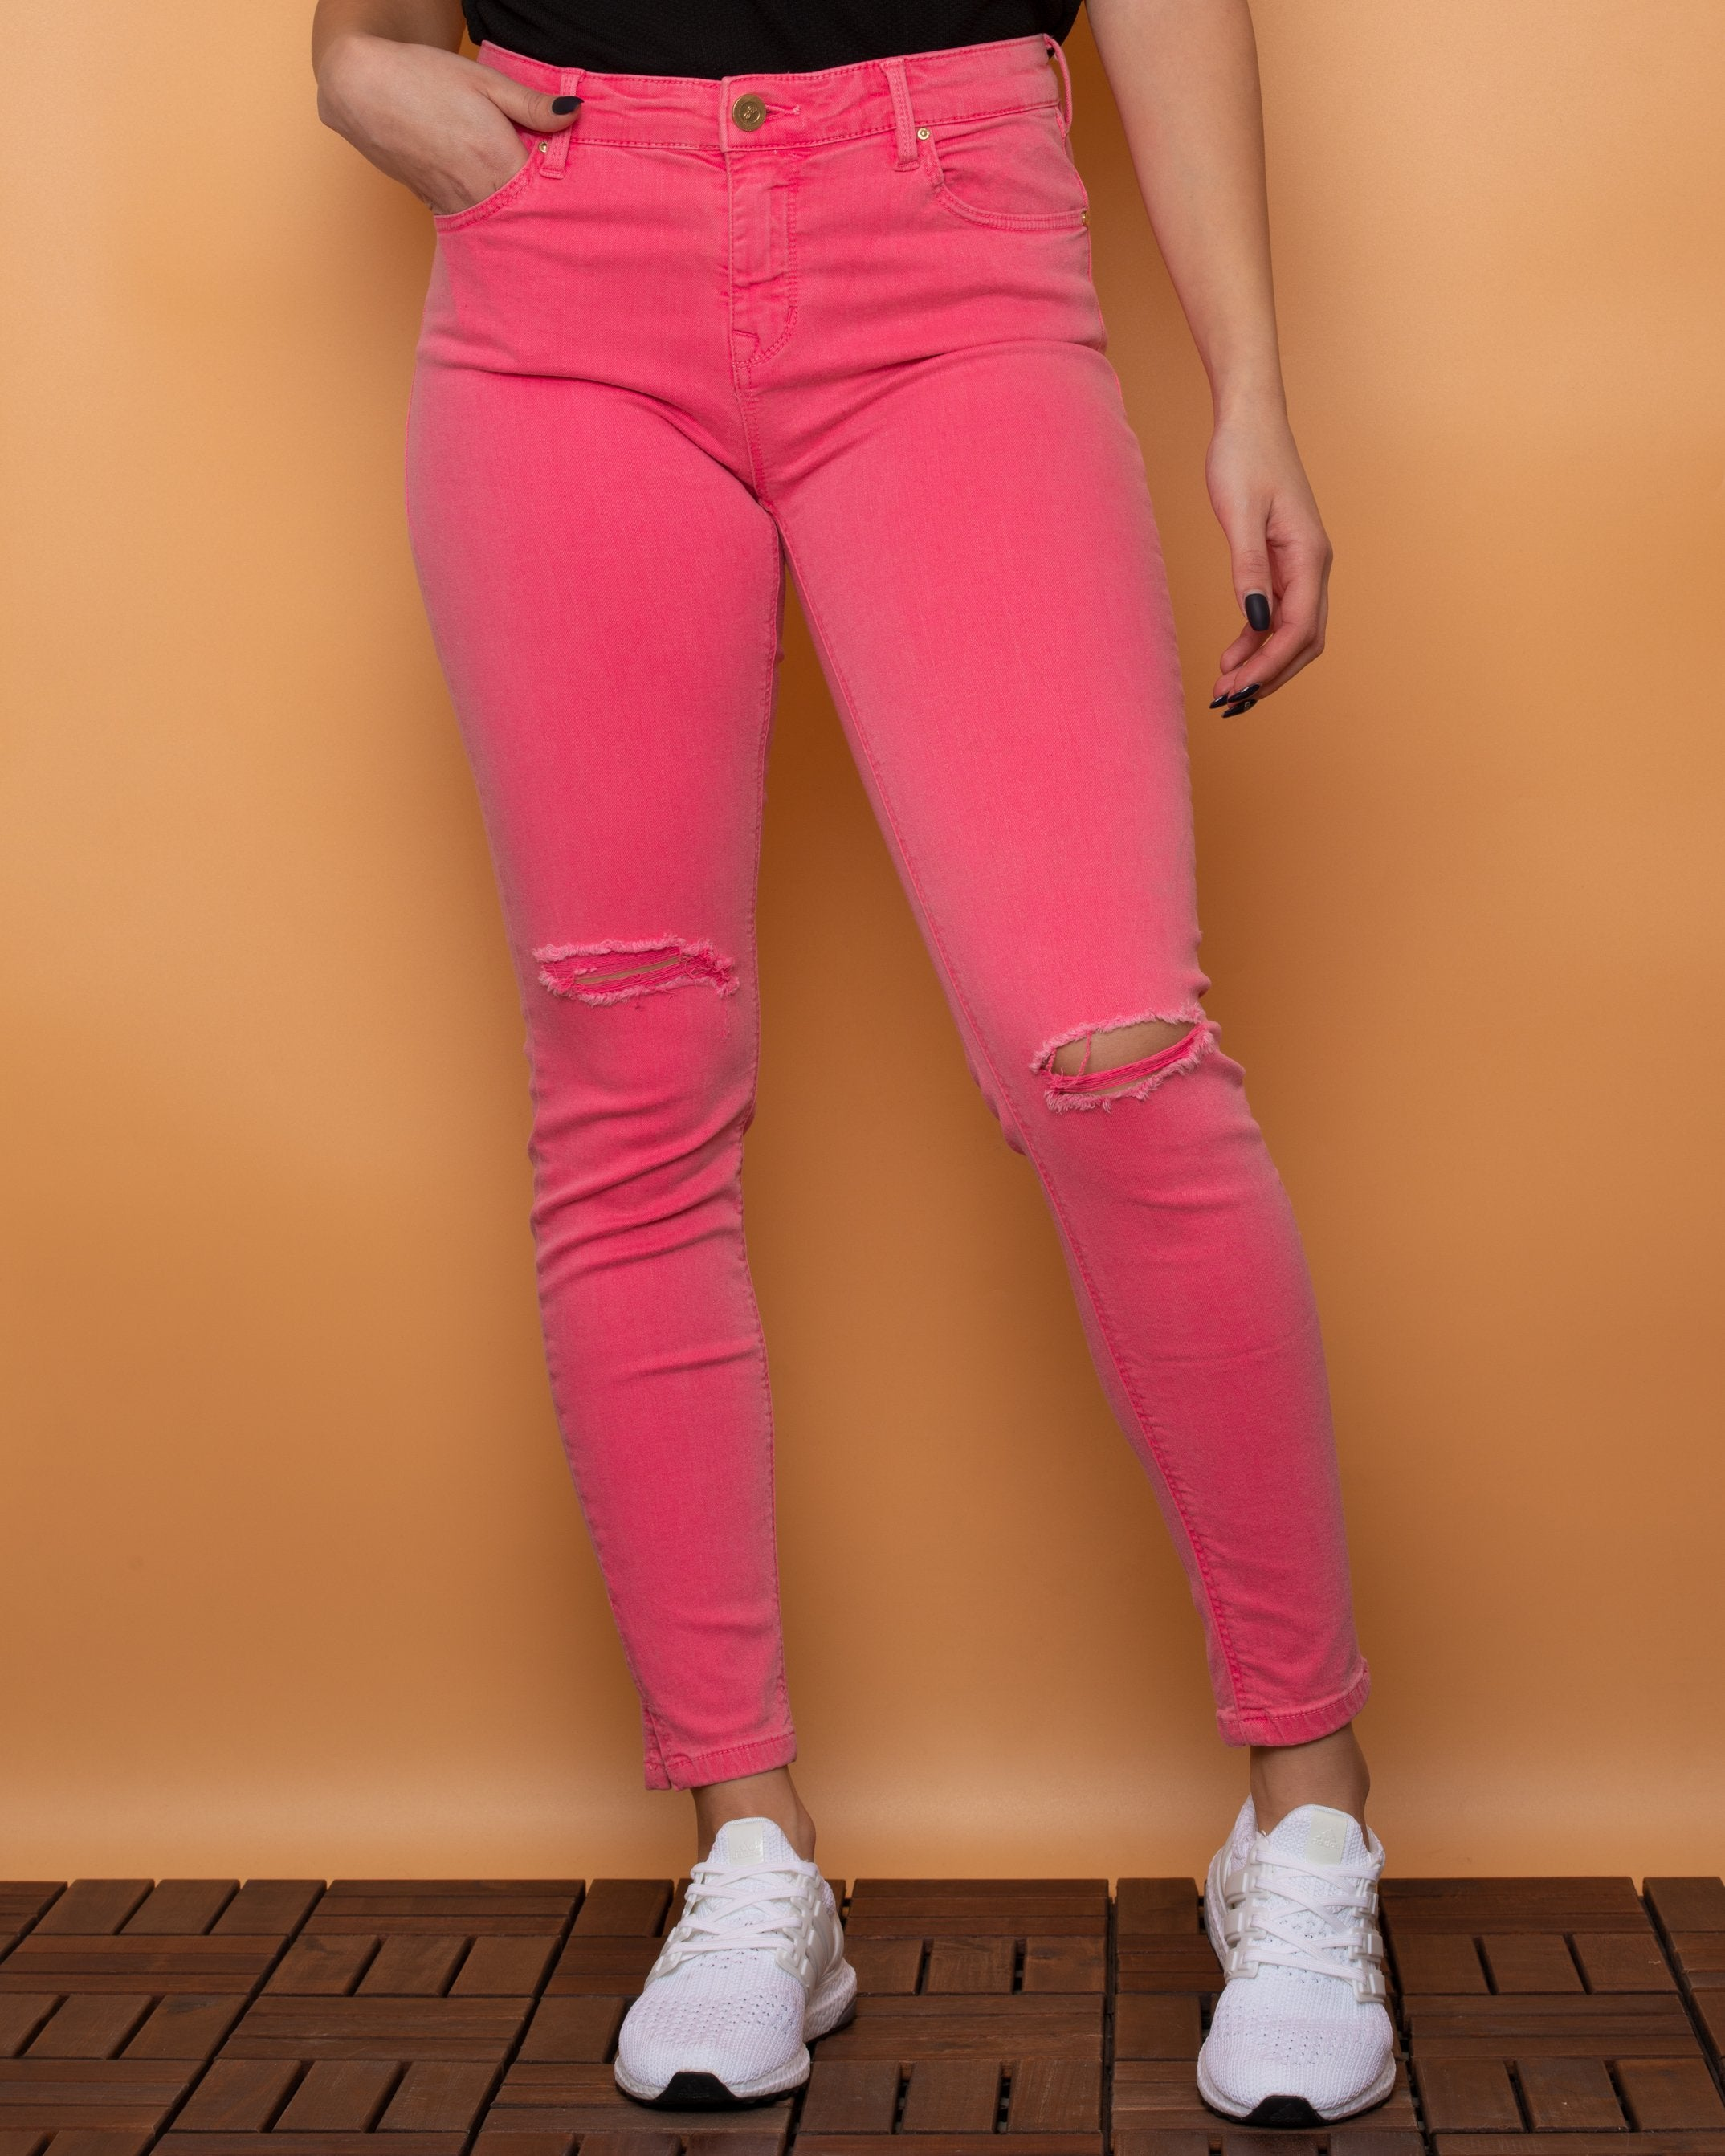 Stradivarius Jeans Cropped High Waist Pink